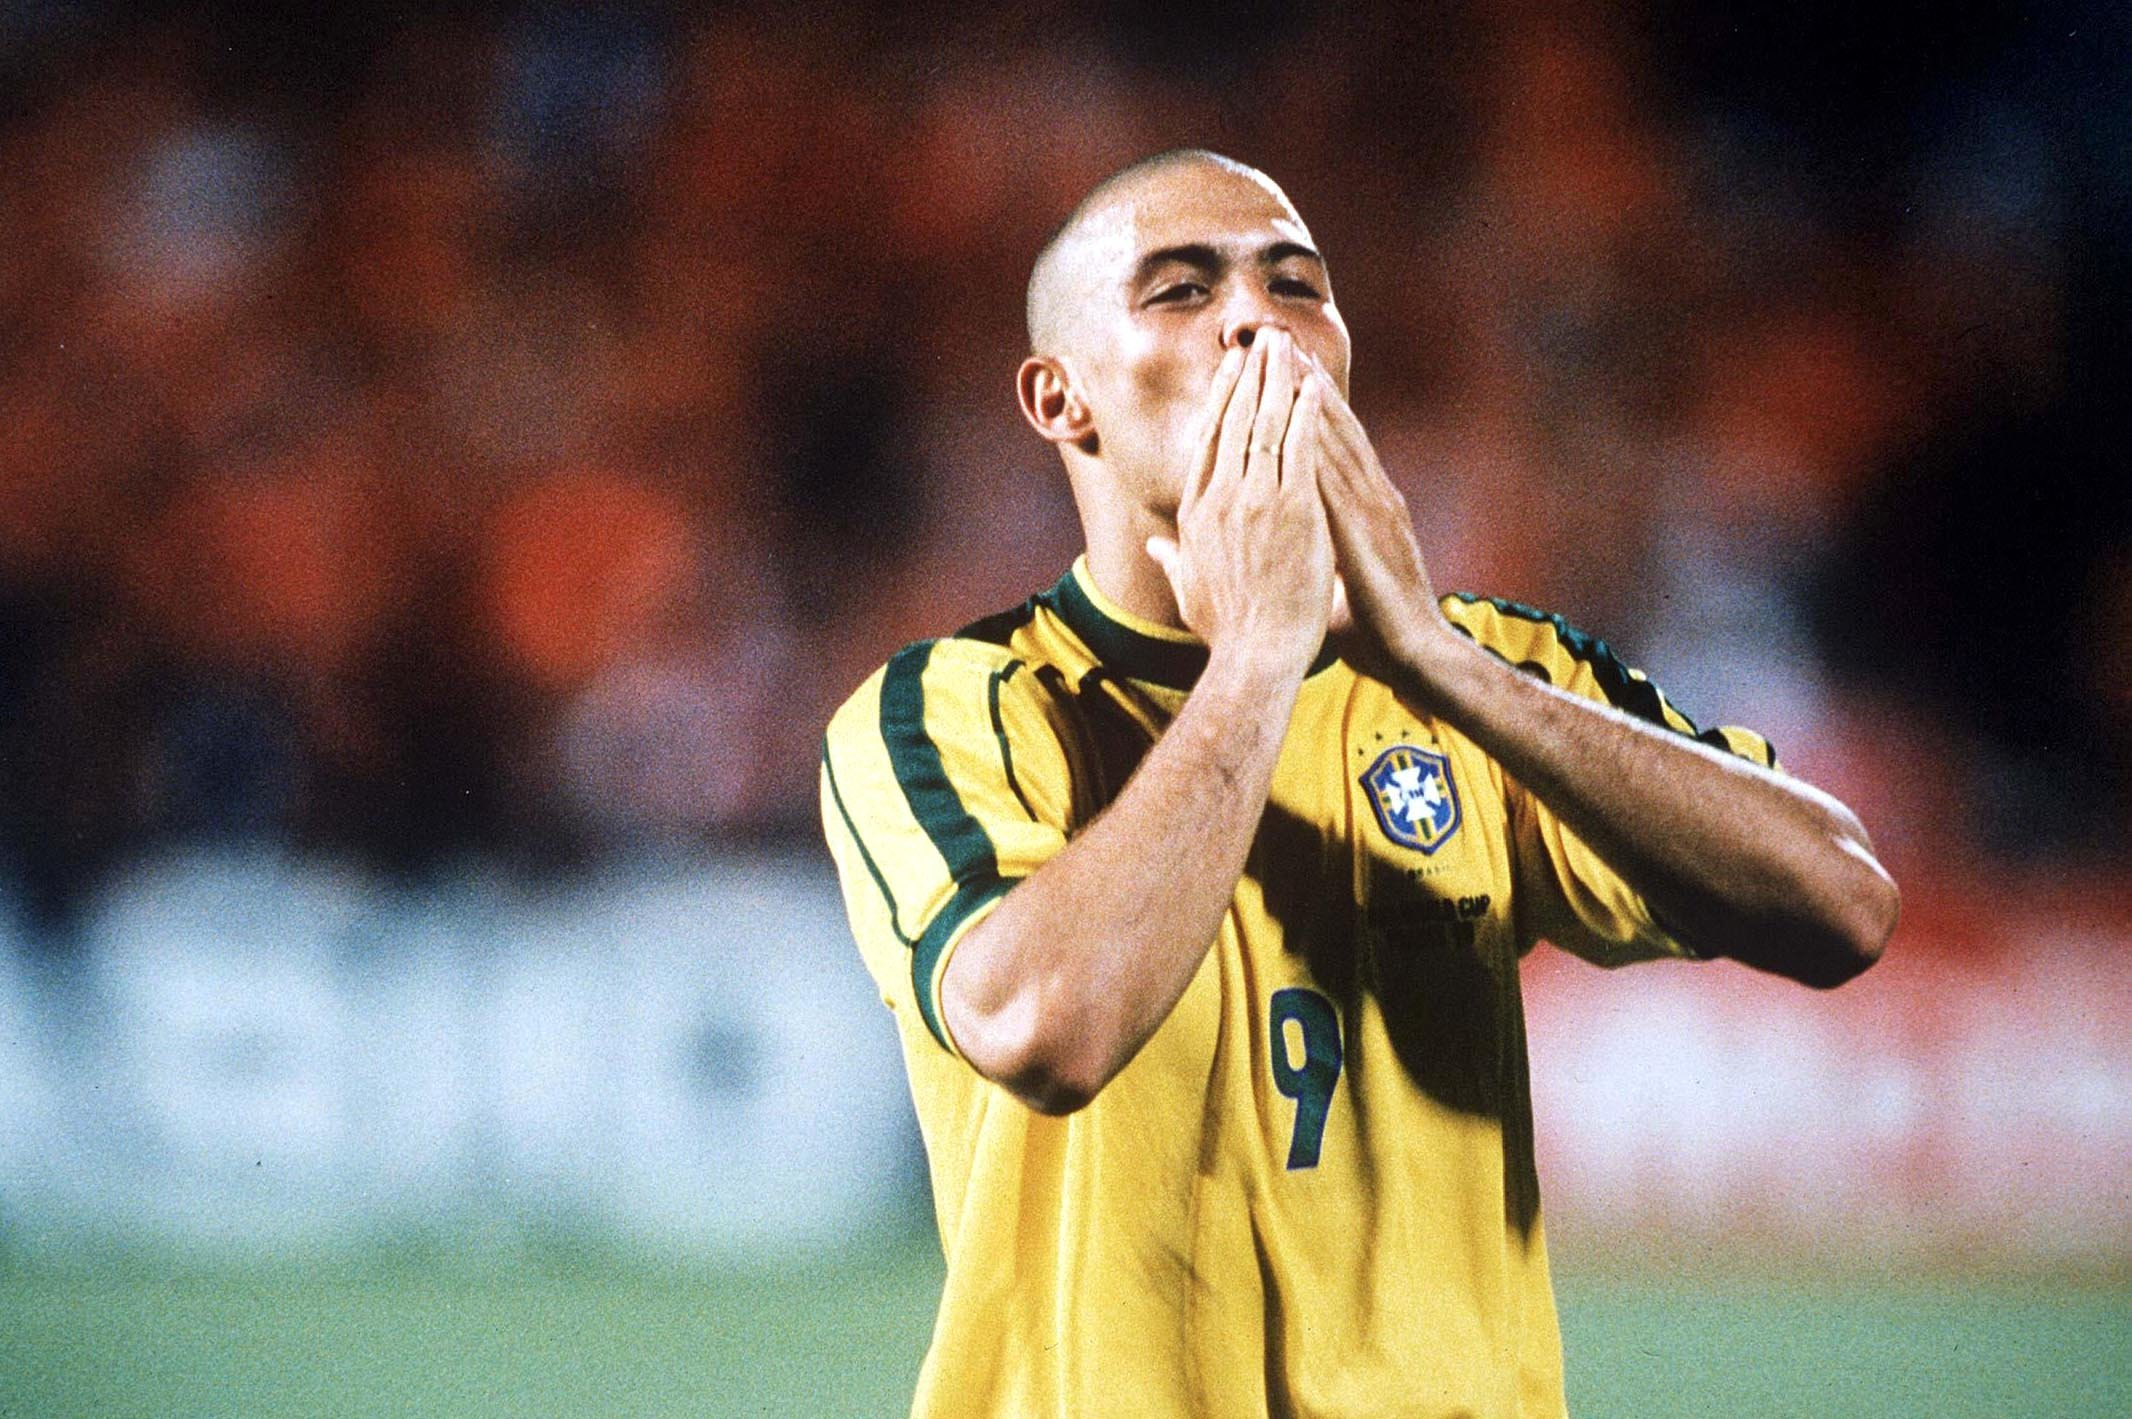 Ronaldo during the 1998 World Cup in France.